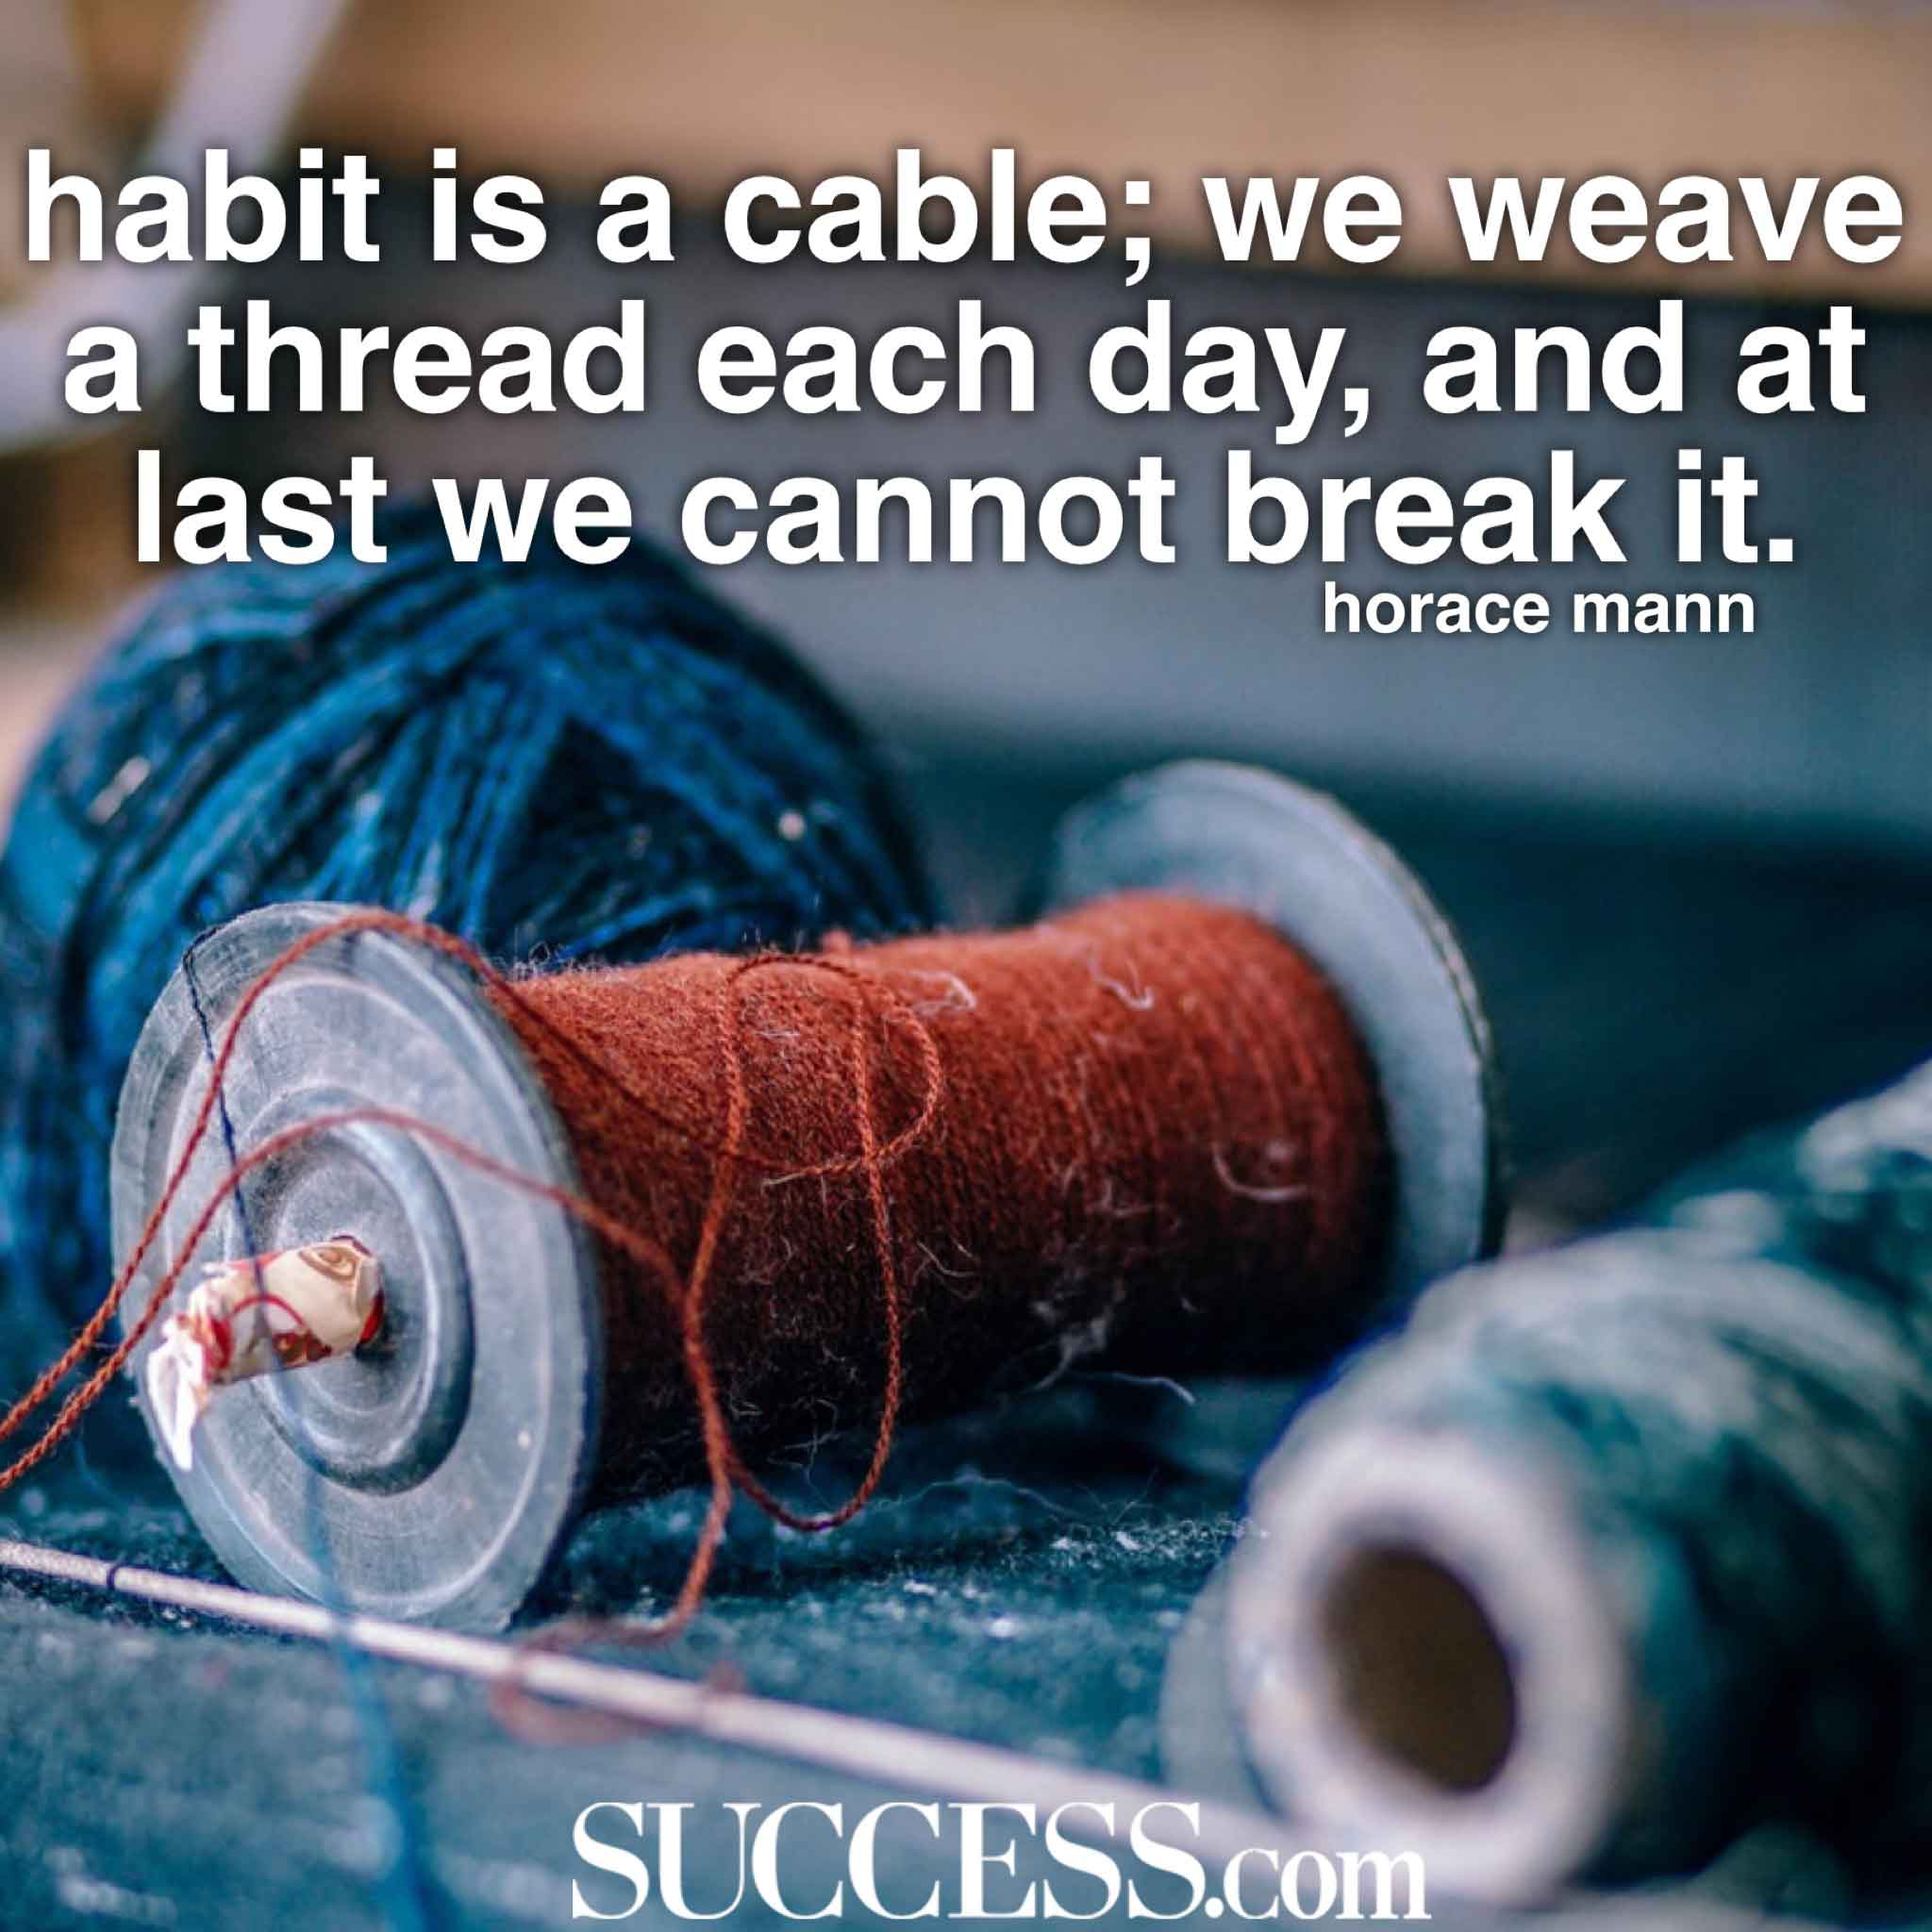 17 Motivational Quotes to Inspire Successful Habits